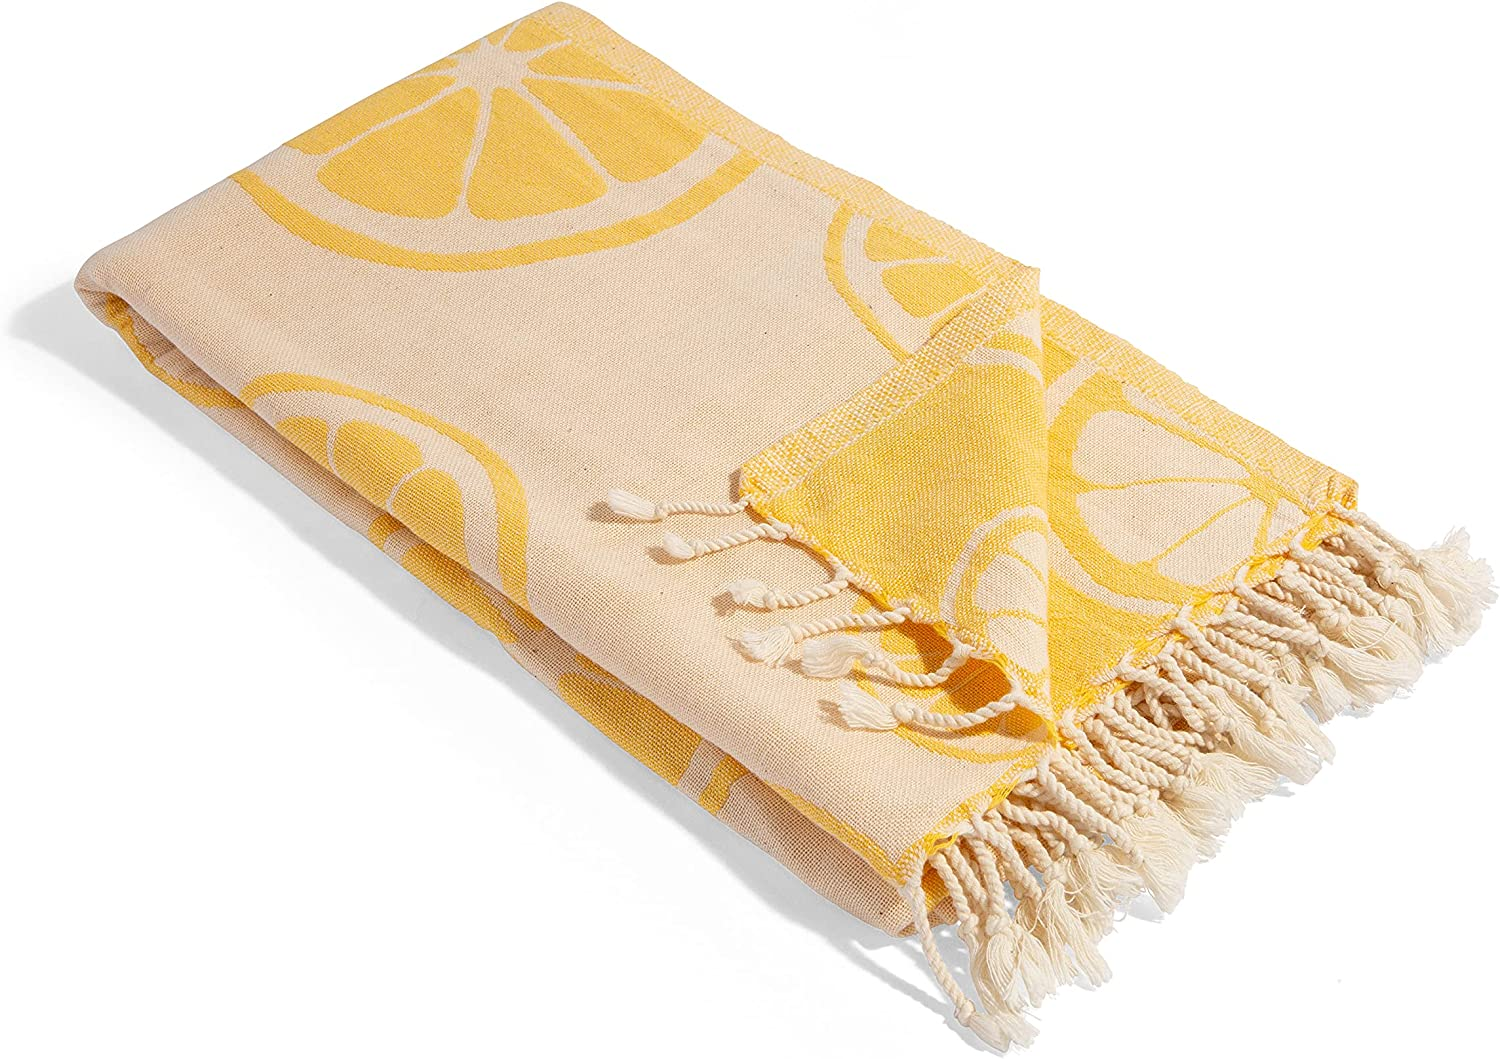 Spring new work one after another InfuseZen Citrus Reversible Turkish Towel - Le Luxury Cotton 100%